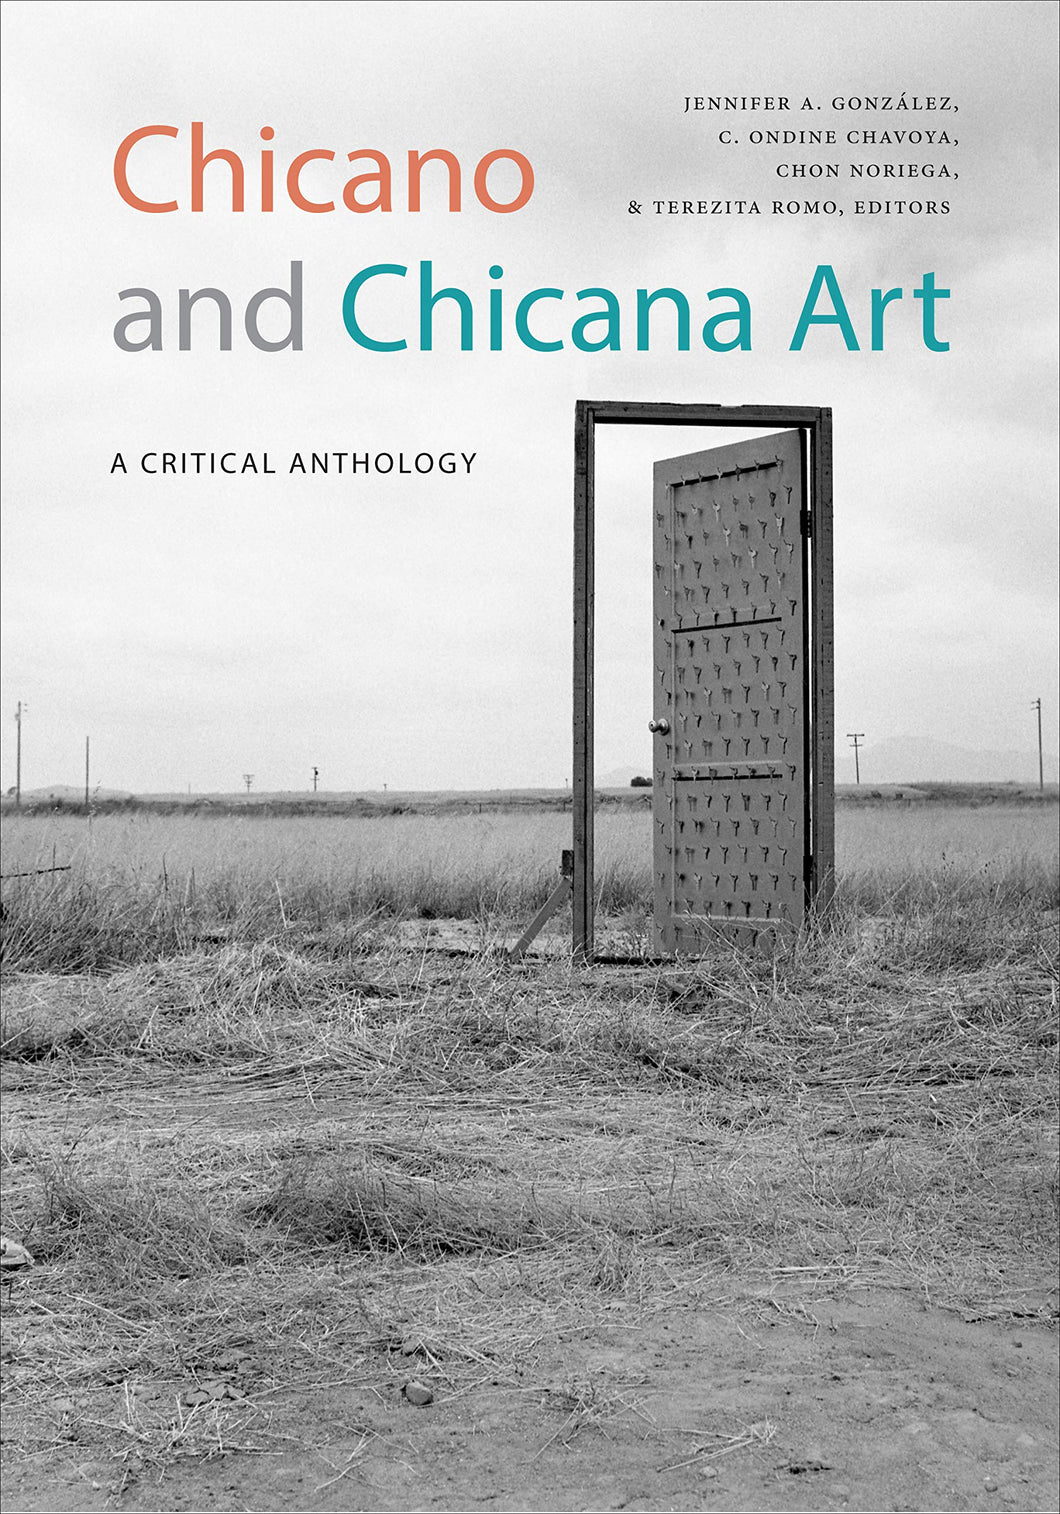 Chicano and Chicana Art: A Critical Anthology by Jennifer A. González, C. Ondine Chavoya, Chon Noriega, Terezita Romo